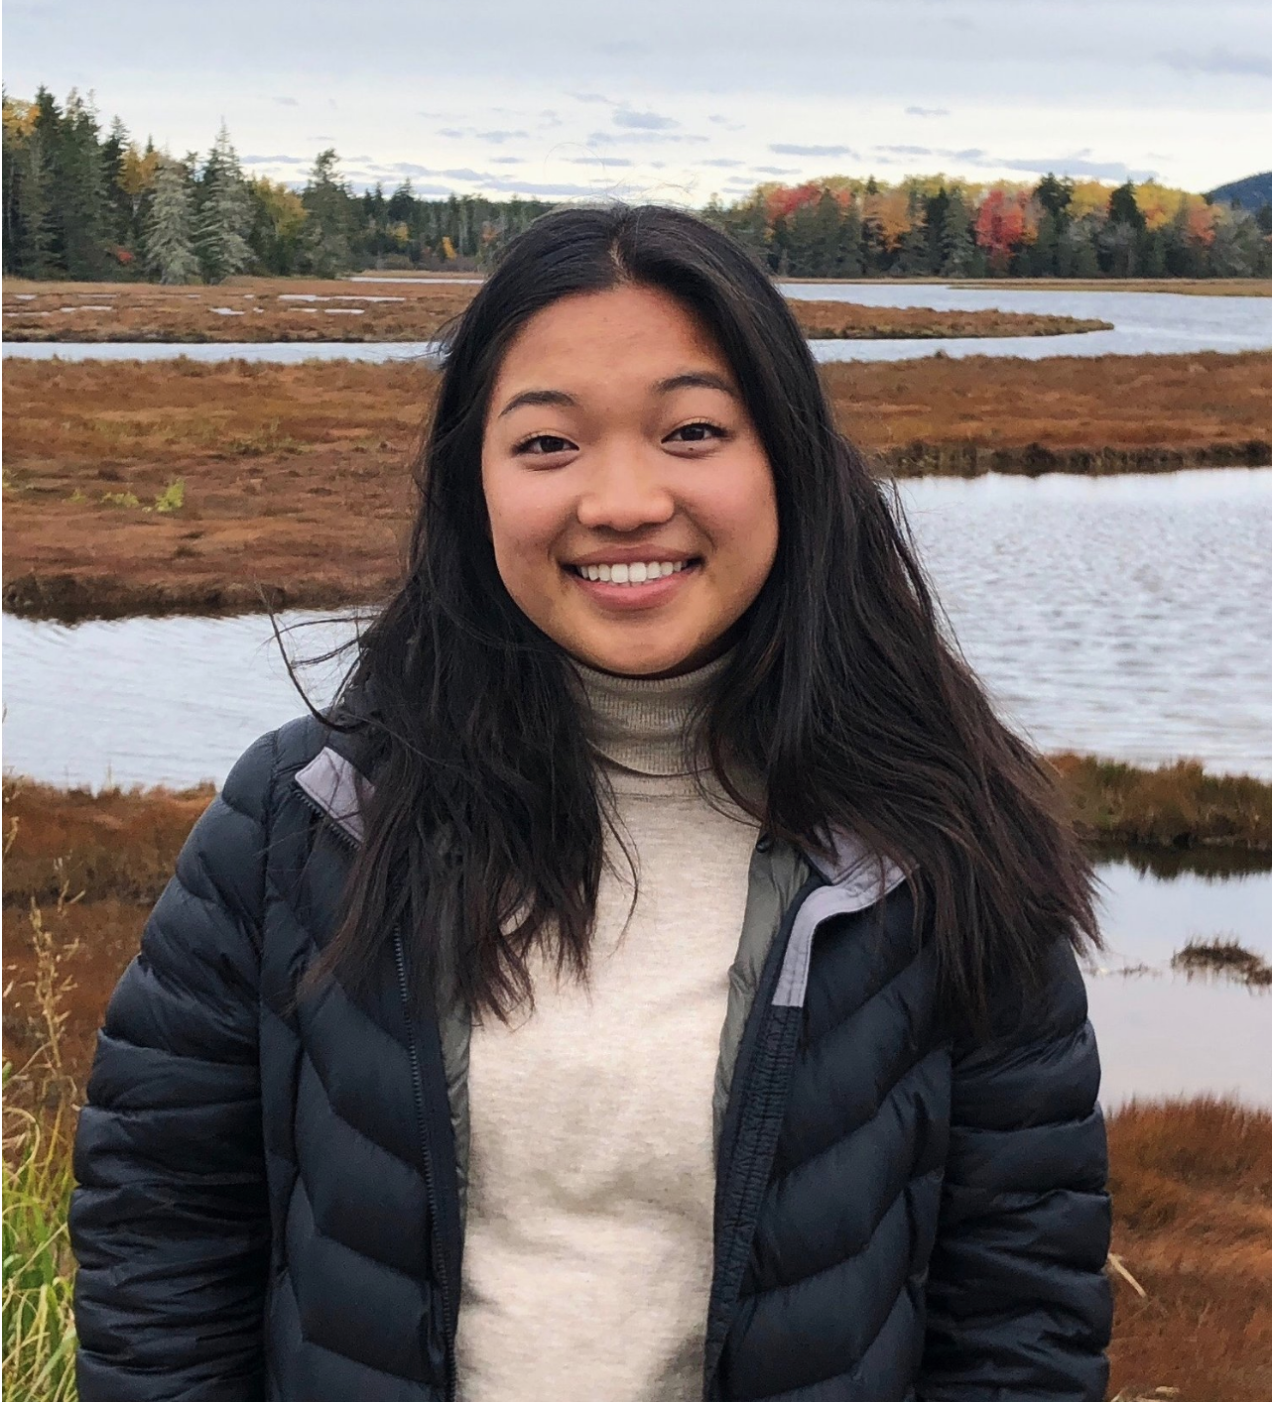 Caitlin Kwok, Summer Research Intern, Gordon College, Undergraduate Student